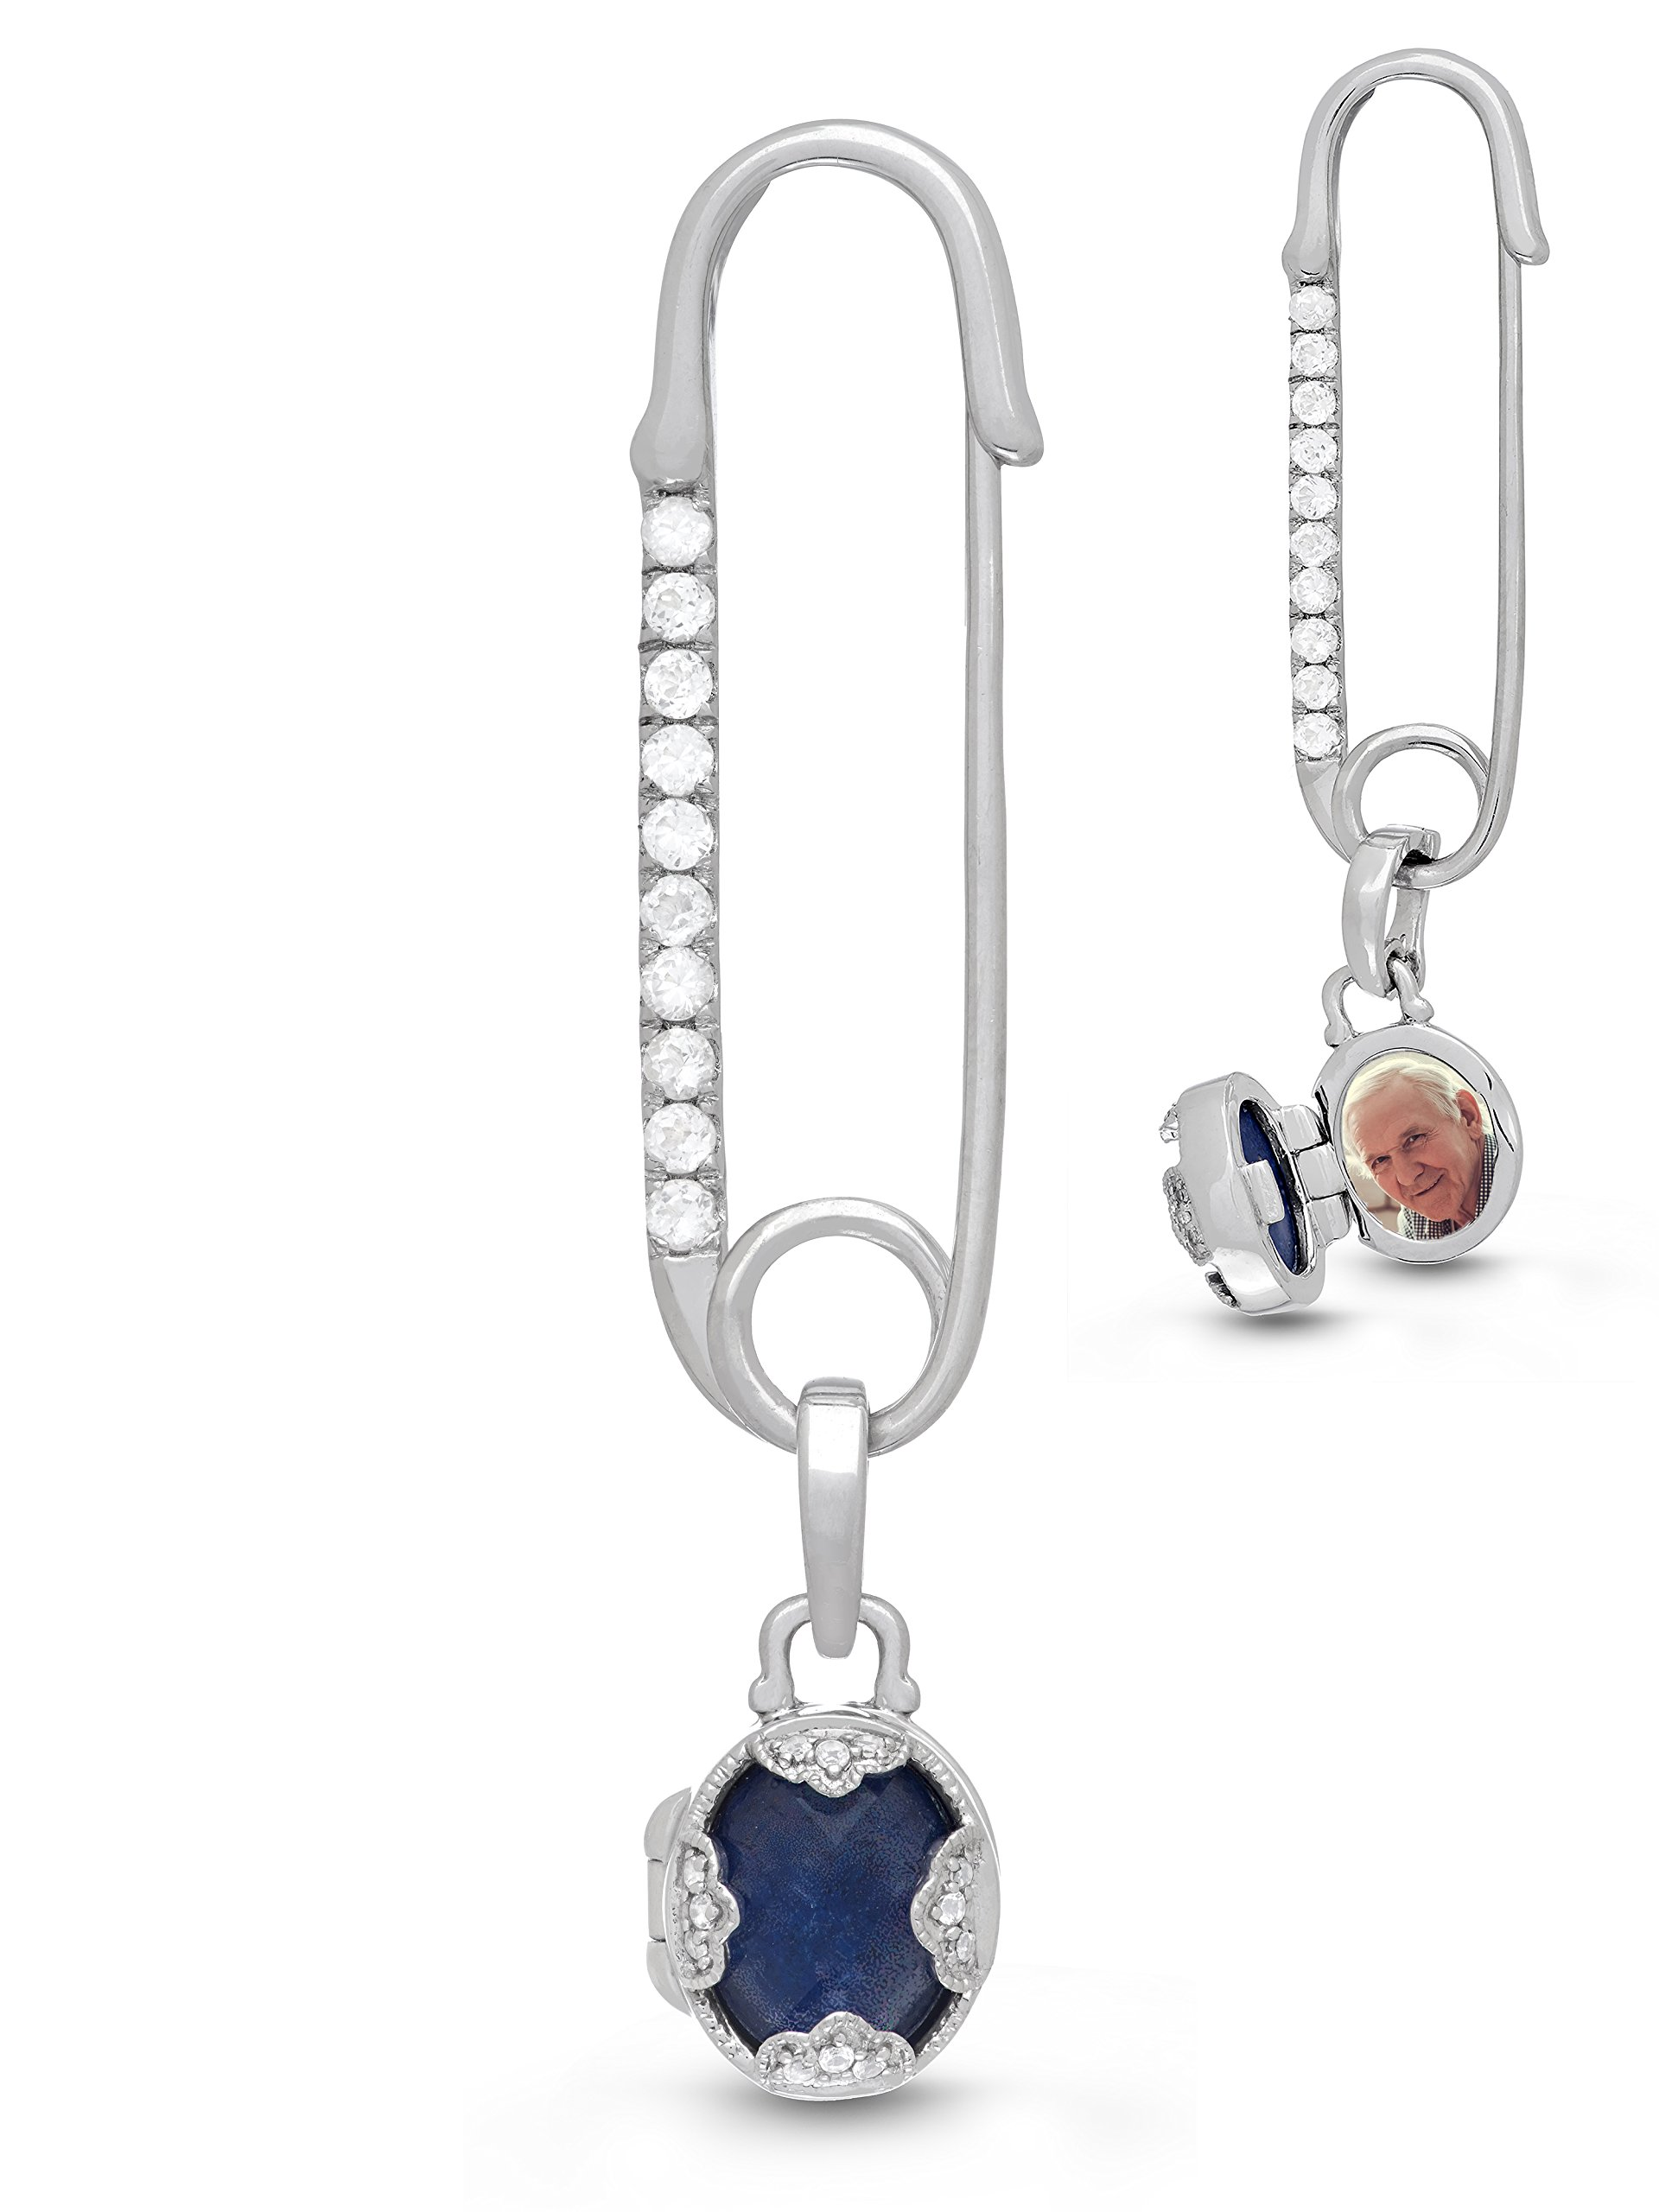 With You Lockets-Sterling Silver-Blue Lapis-Topaz-Custom Photo Locket-Bridal-Brooch-Wedding-Bouquet Pin-The Gloria